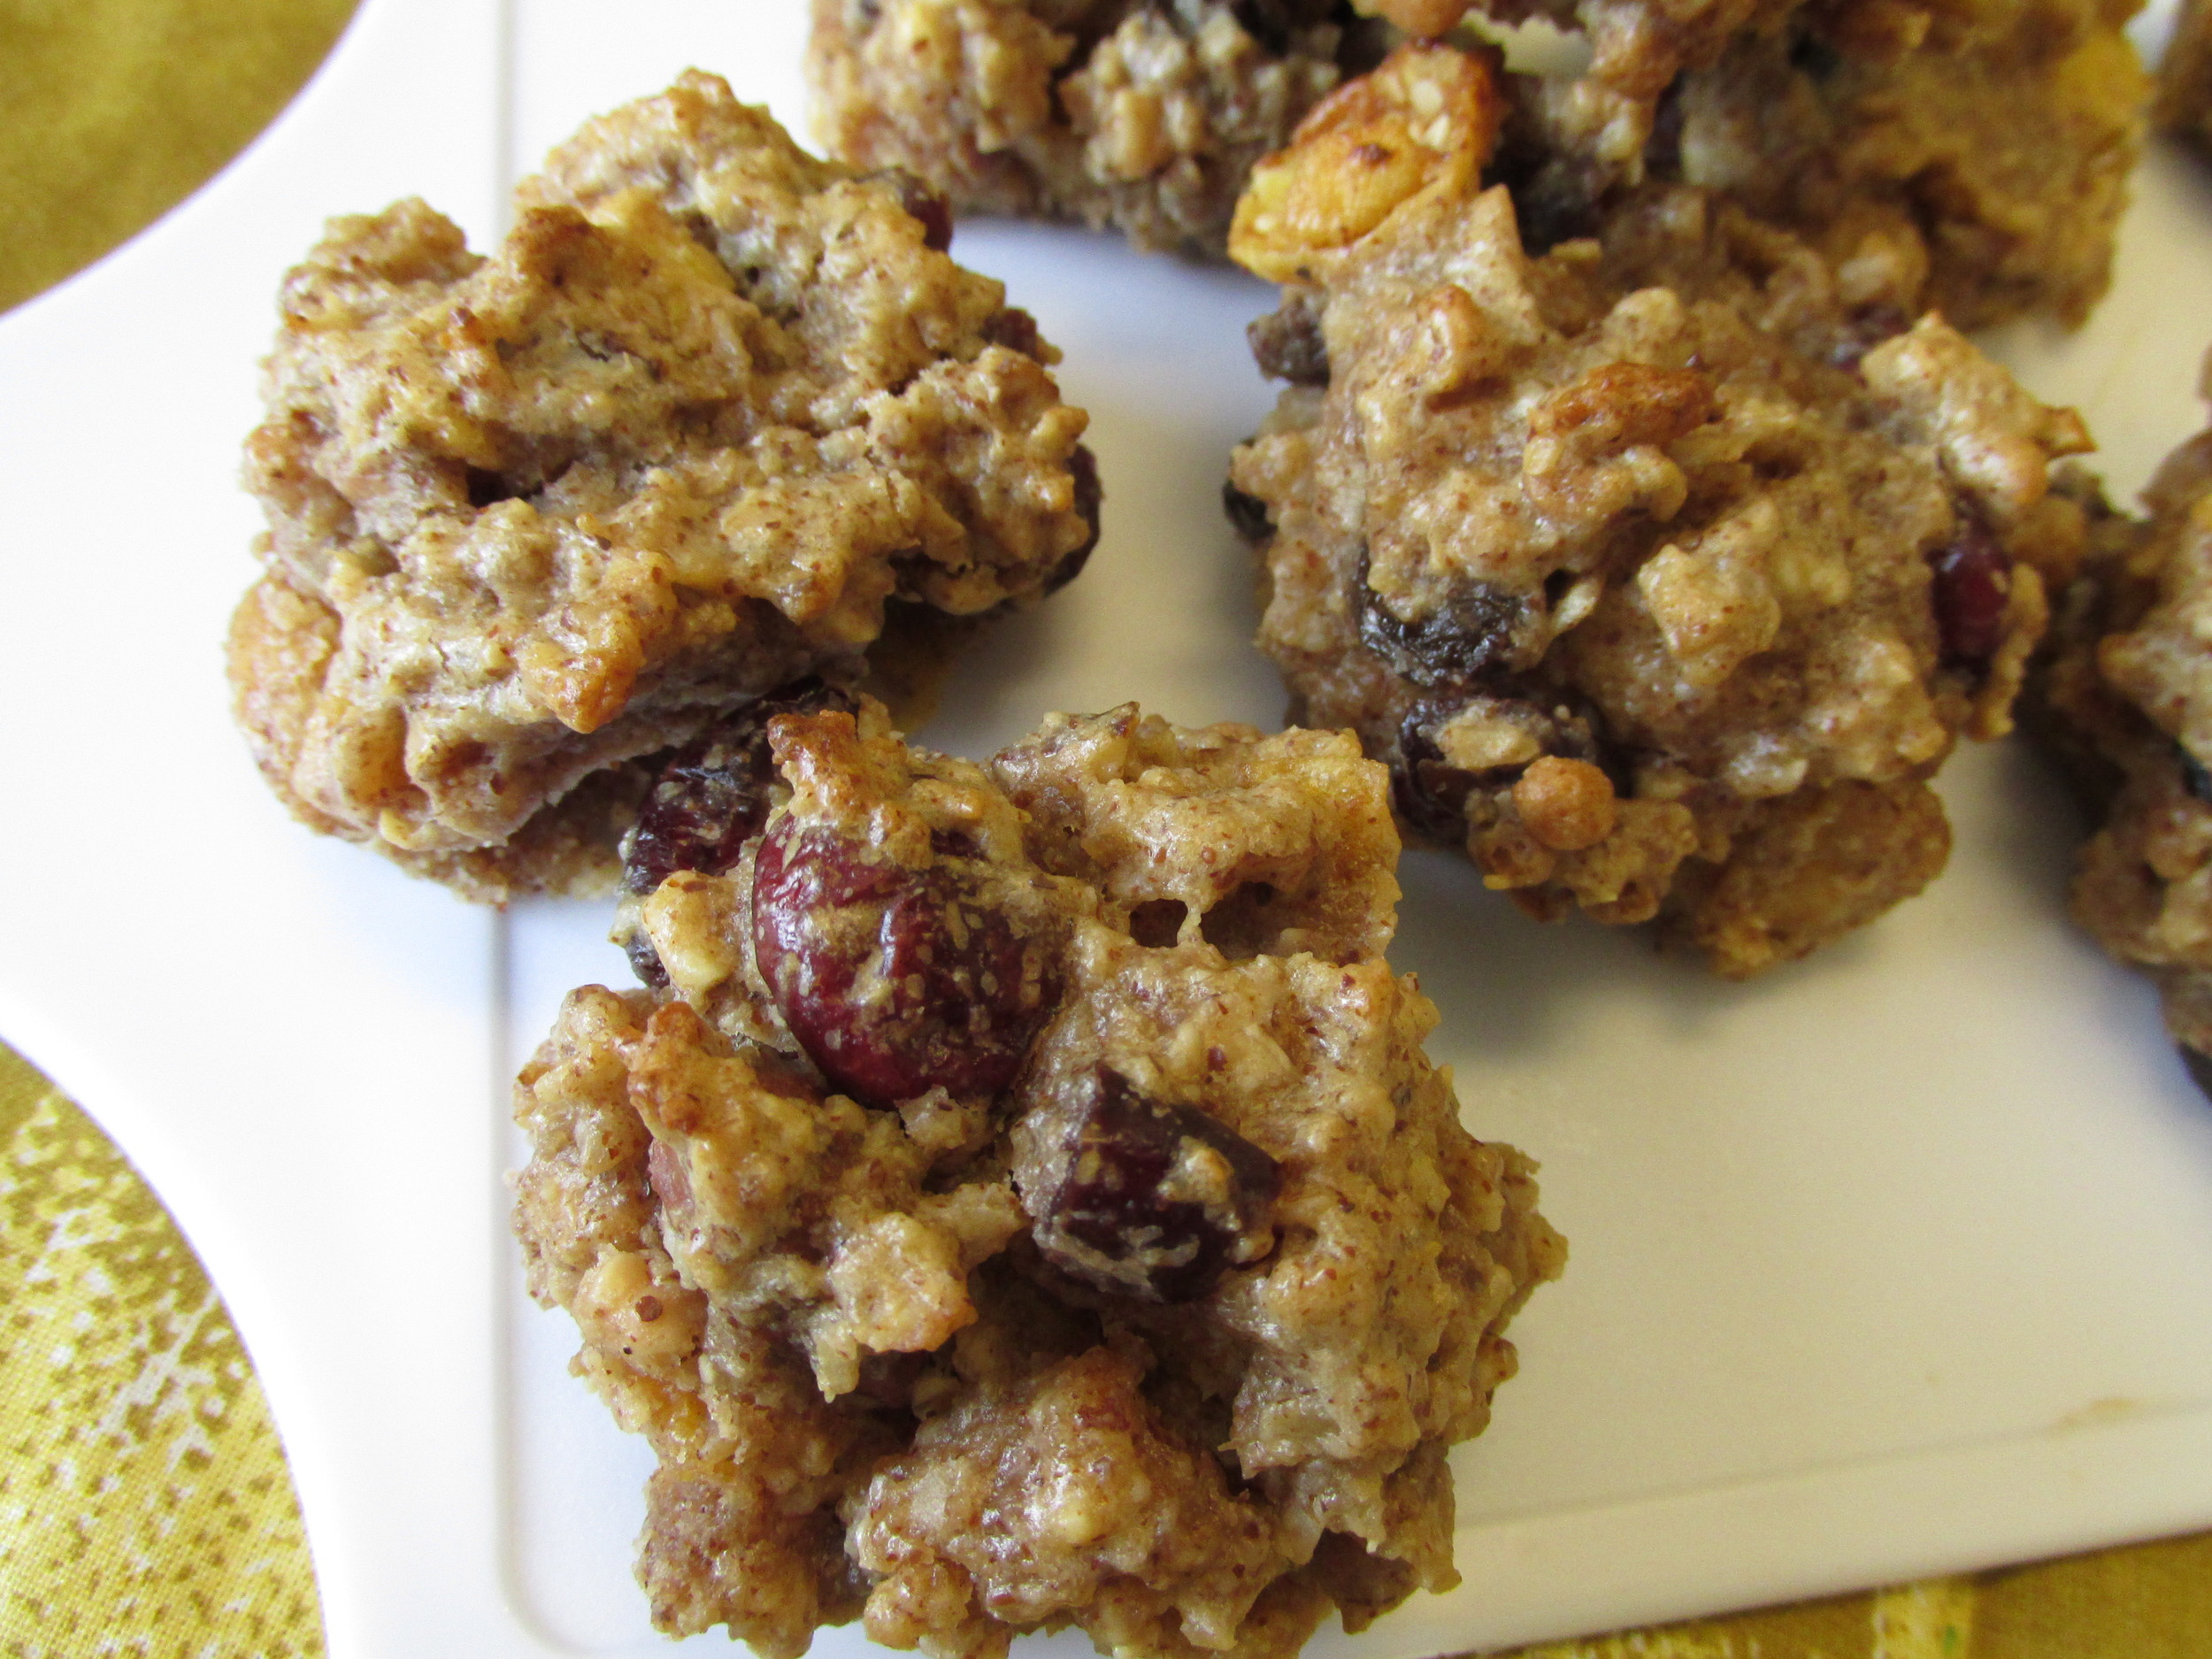 Early Bird Cookies, made with unsweetened applesauce, oats, granola, dried fruit and favorite nut butter